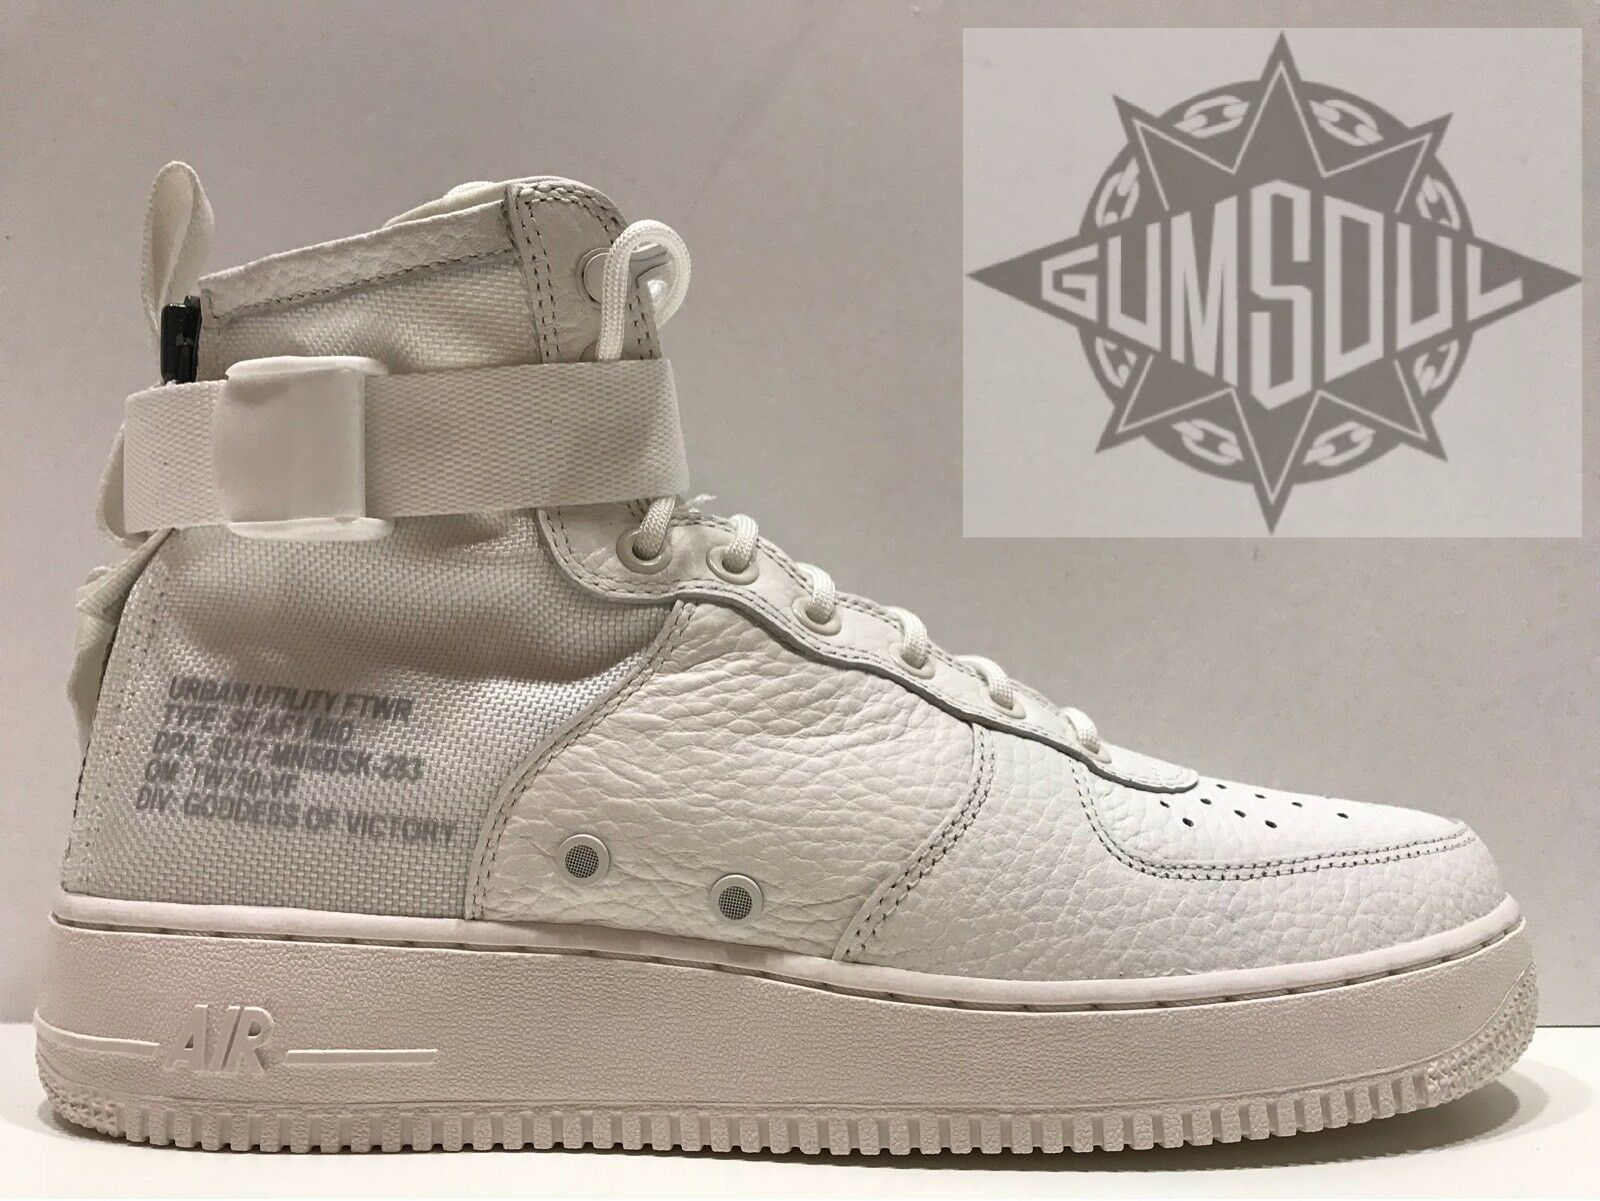 NIKE SF AF1 MID AIR FORCE 1 SPECIAL FIELD TRIPLE IVORY AA6655 100 sz 10.5